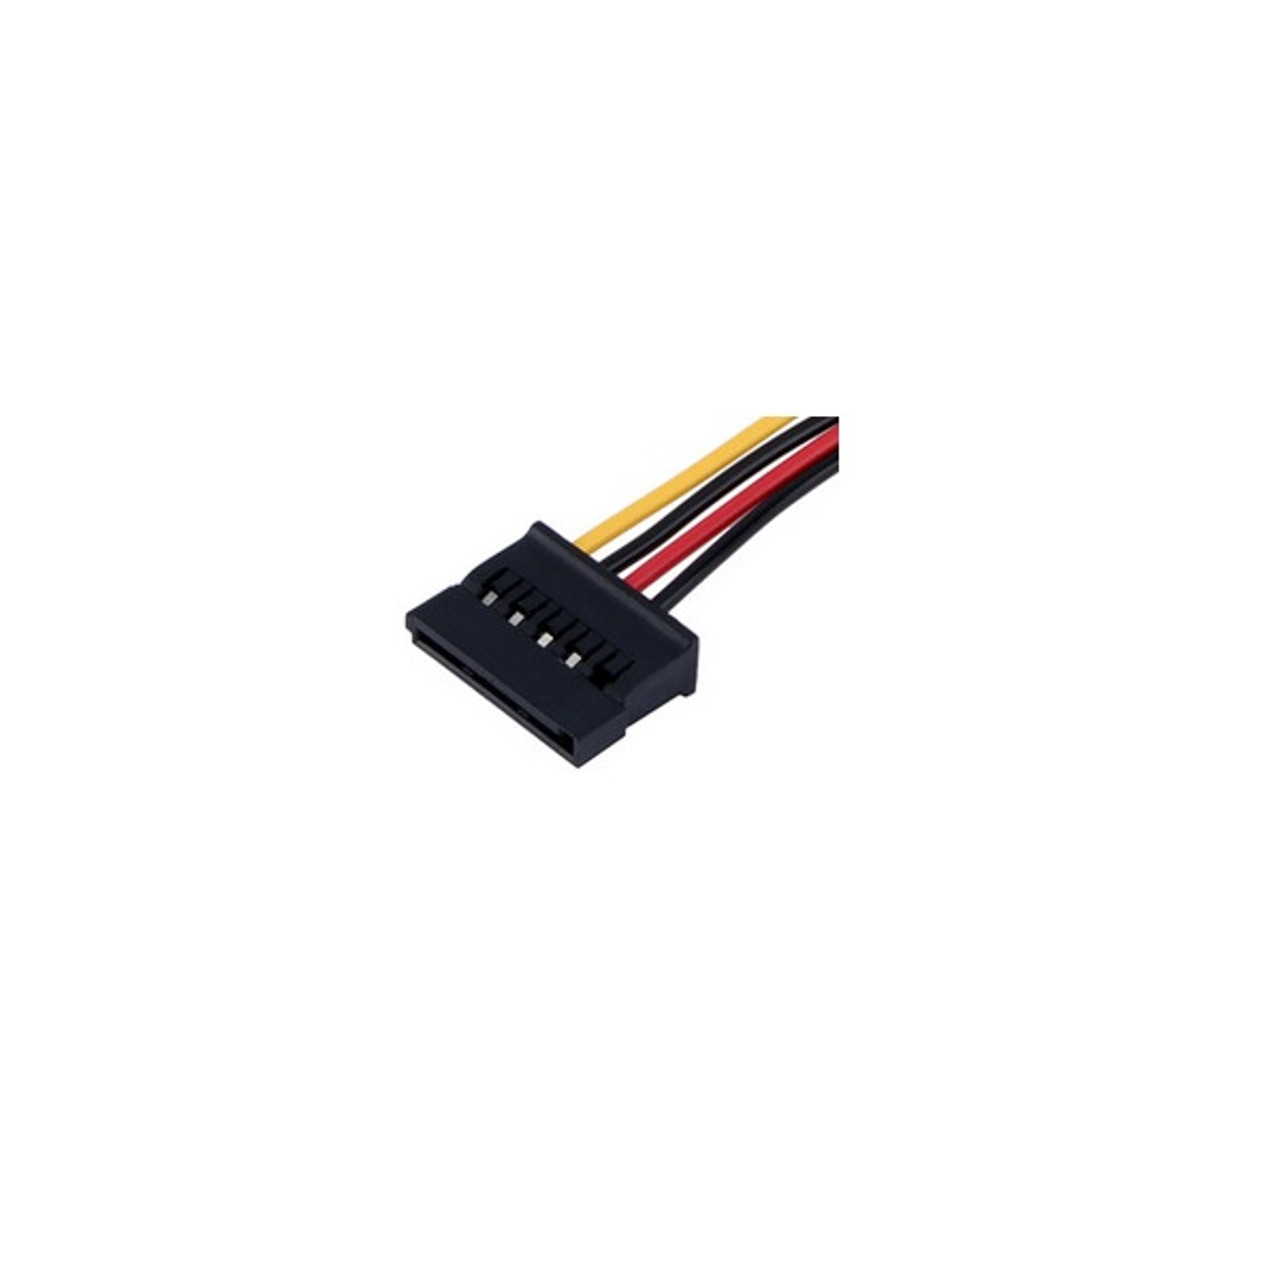 Product image for Aerocool 140mm 4Pin Molex To SATA Power Adapter Cable | CX Computer Superstore